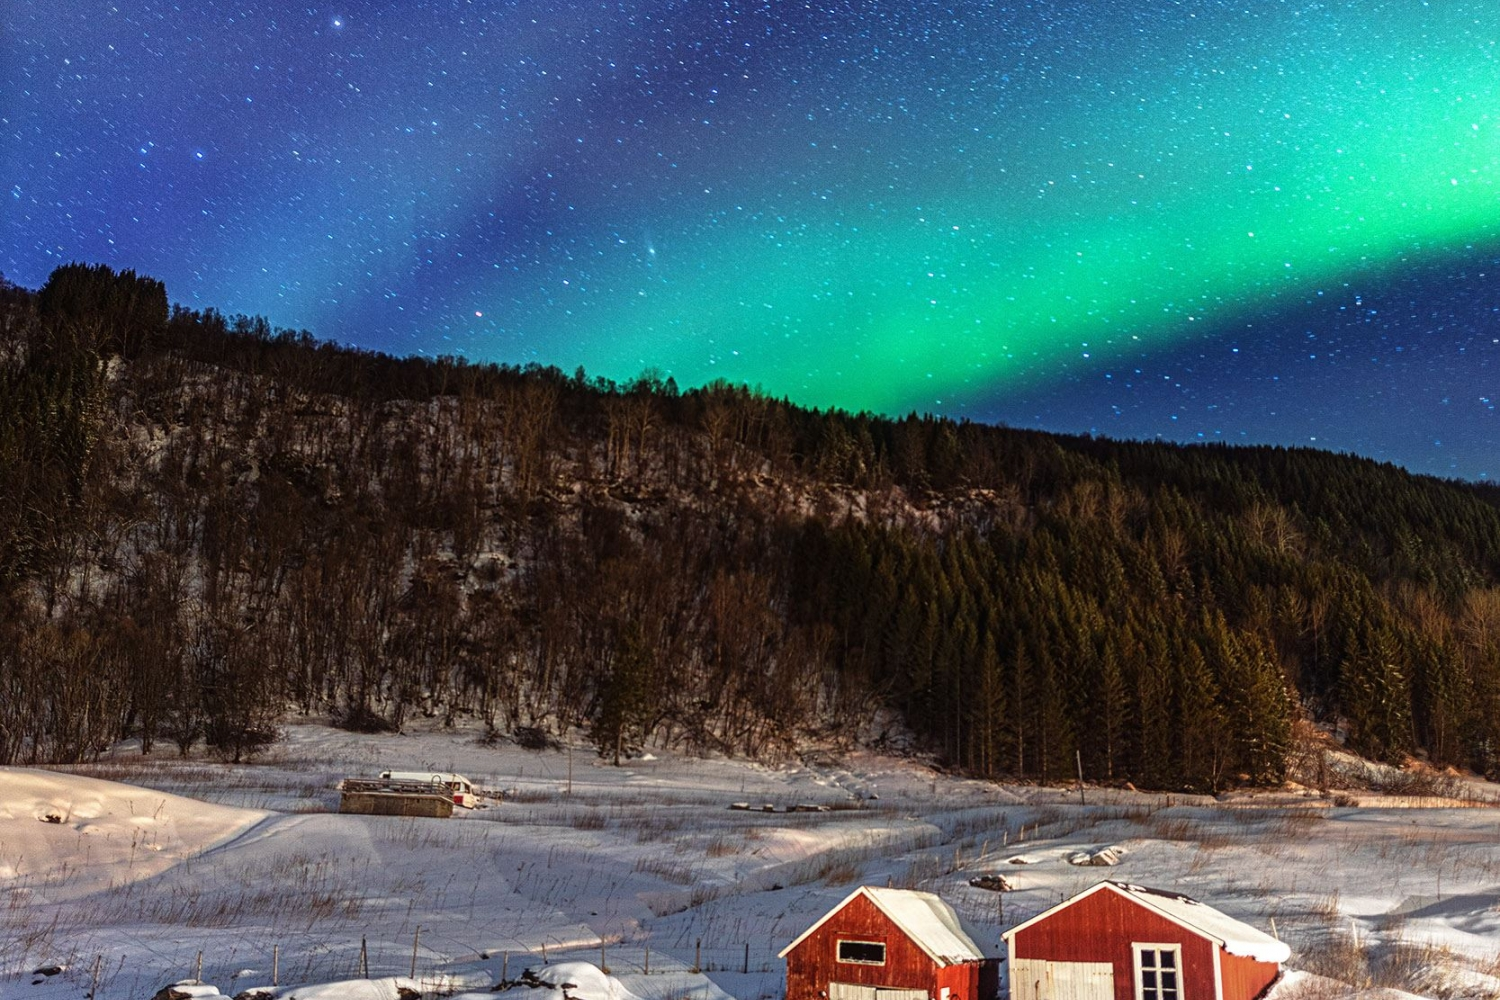 Northern Lights over farm and forest